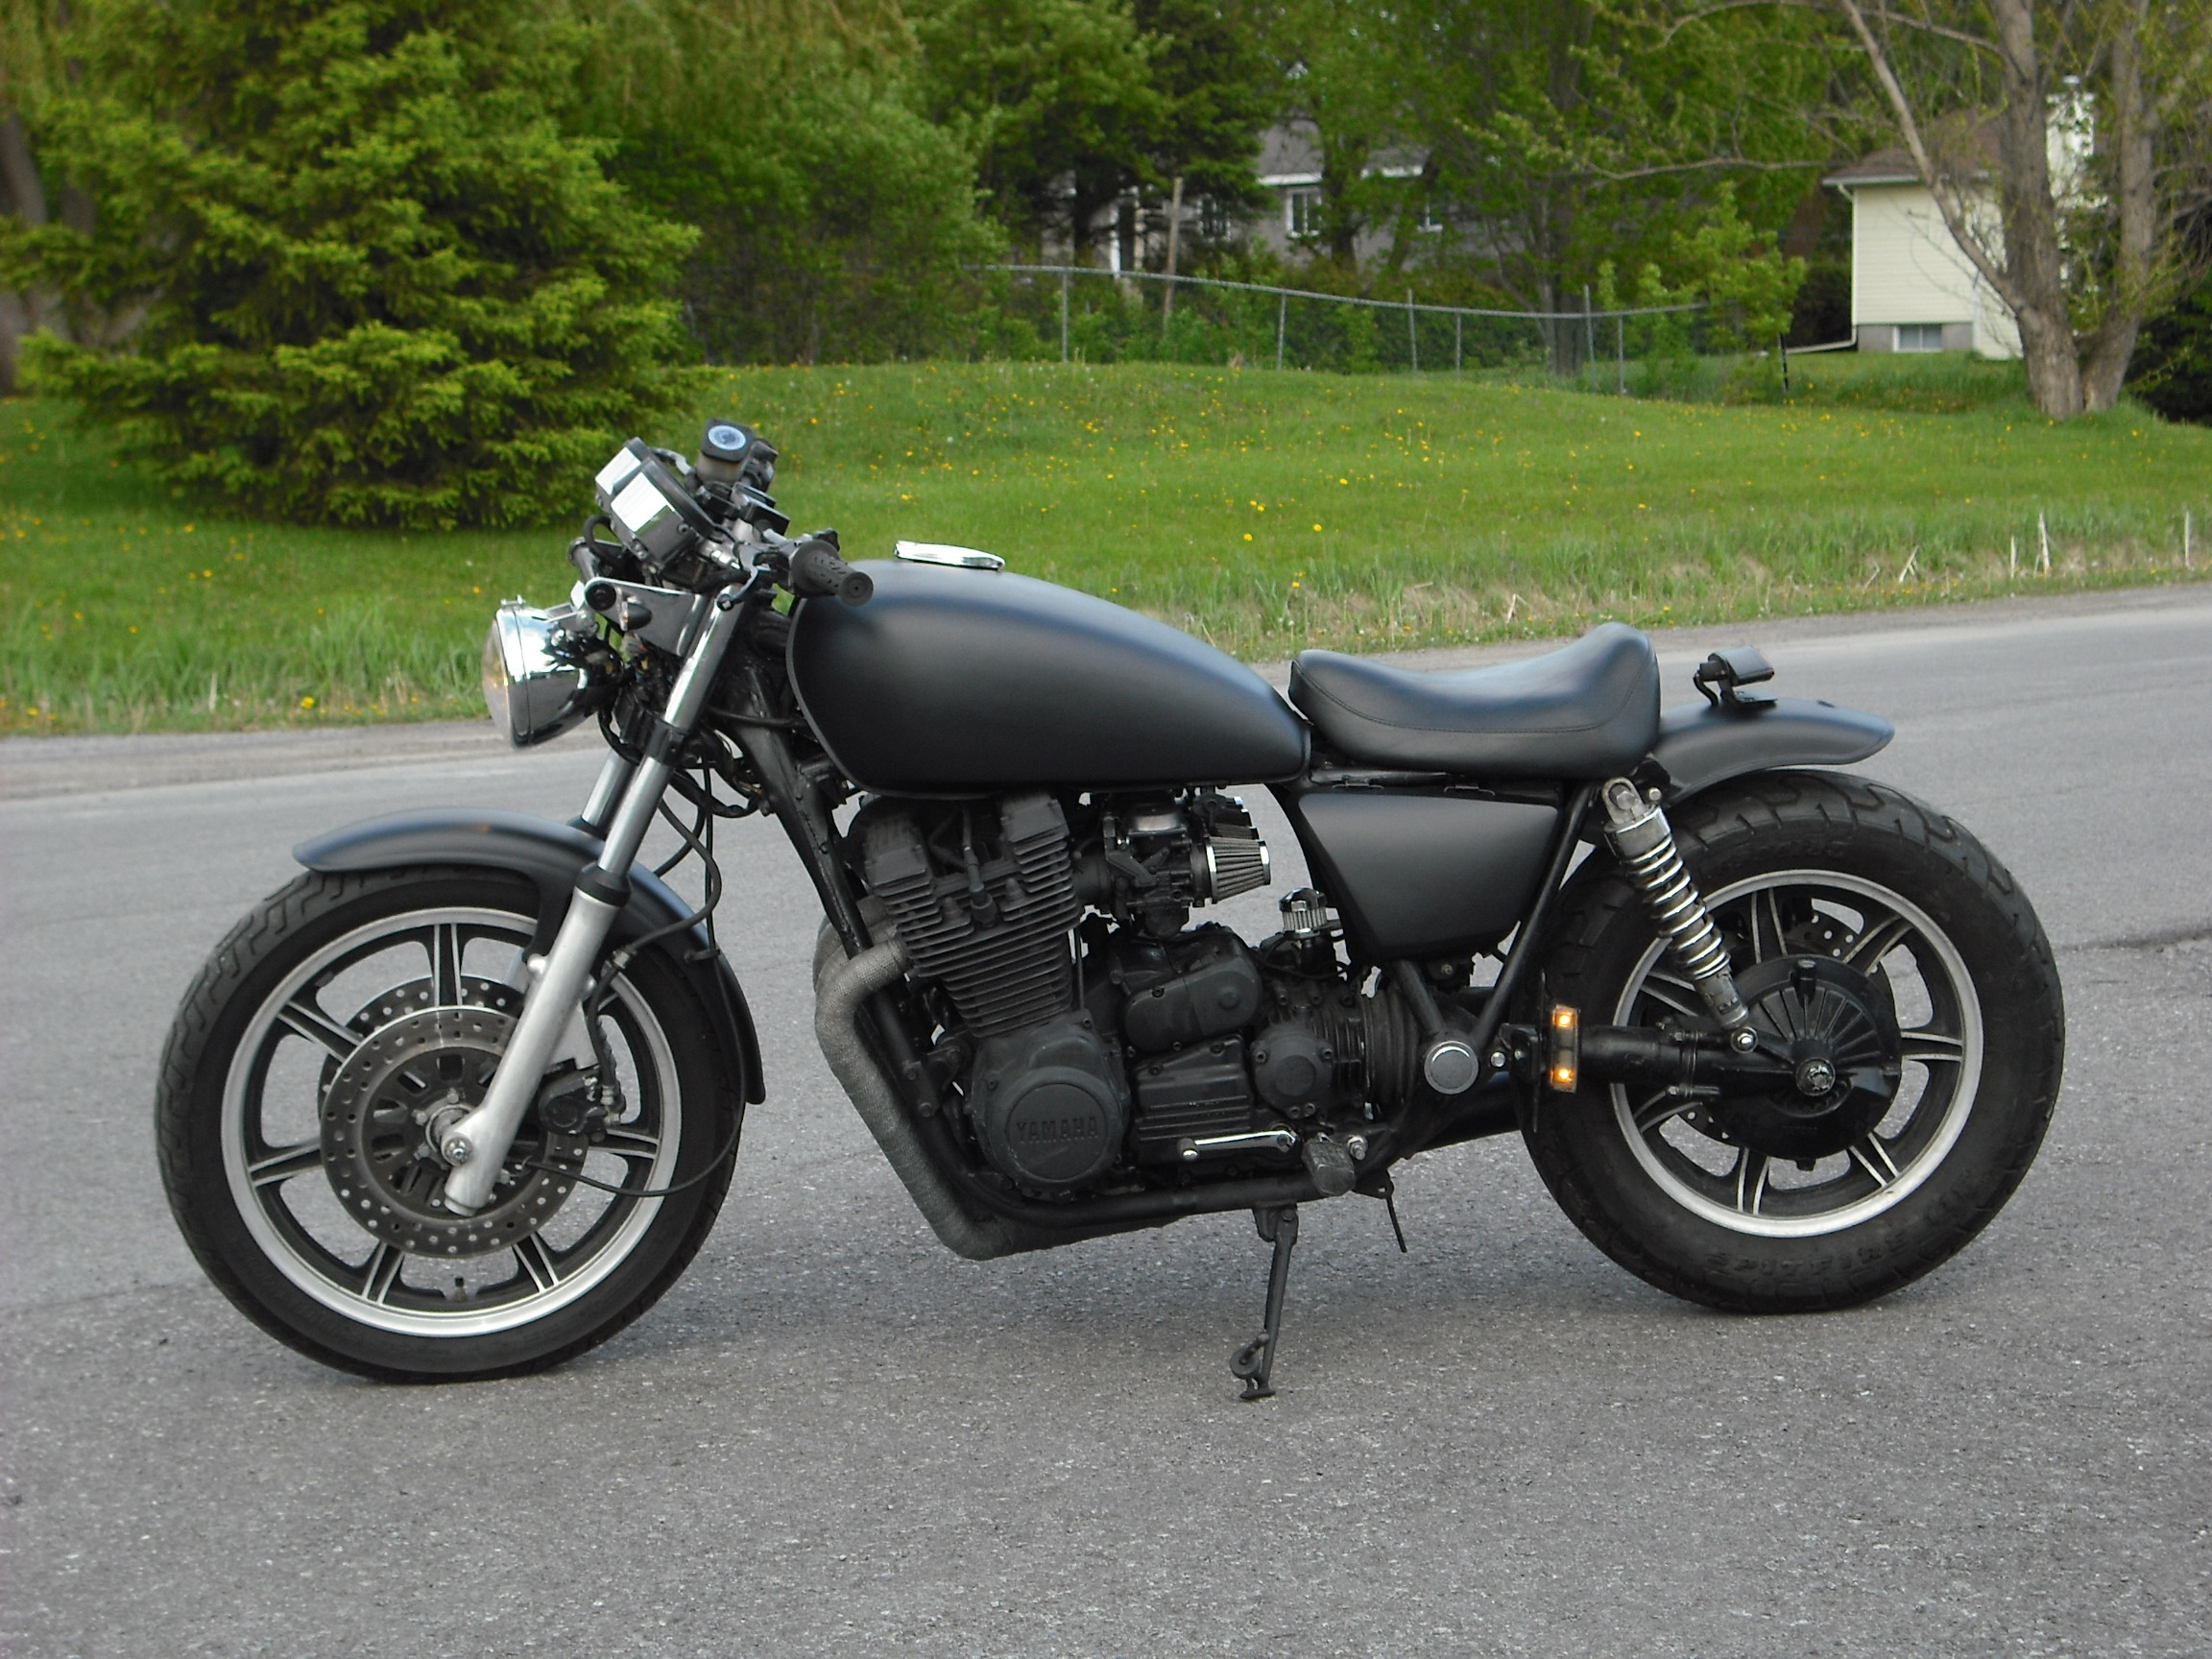 2015 Yamaha T Max Iron Max Looks Sharp And Evil Photo Gallery 91085 together with Mt 09 Tracer likewise Yamaha XS 650 moreover Viewtopic likewise 2015 Harley Davidson Dyna Street Bob Shows Up Photo Gallery 86556. on 79 yamaha 750 special